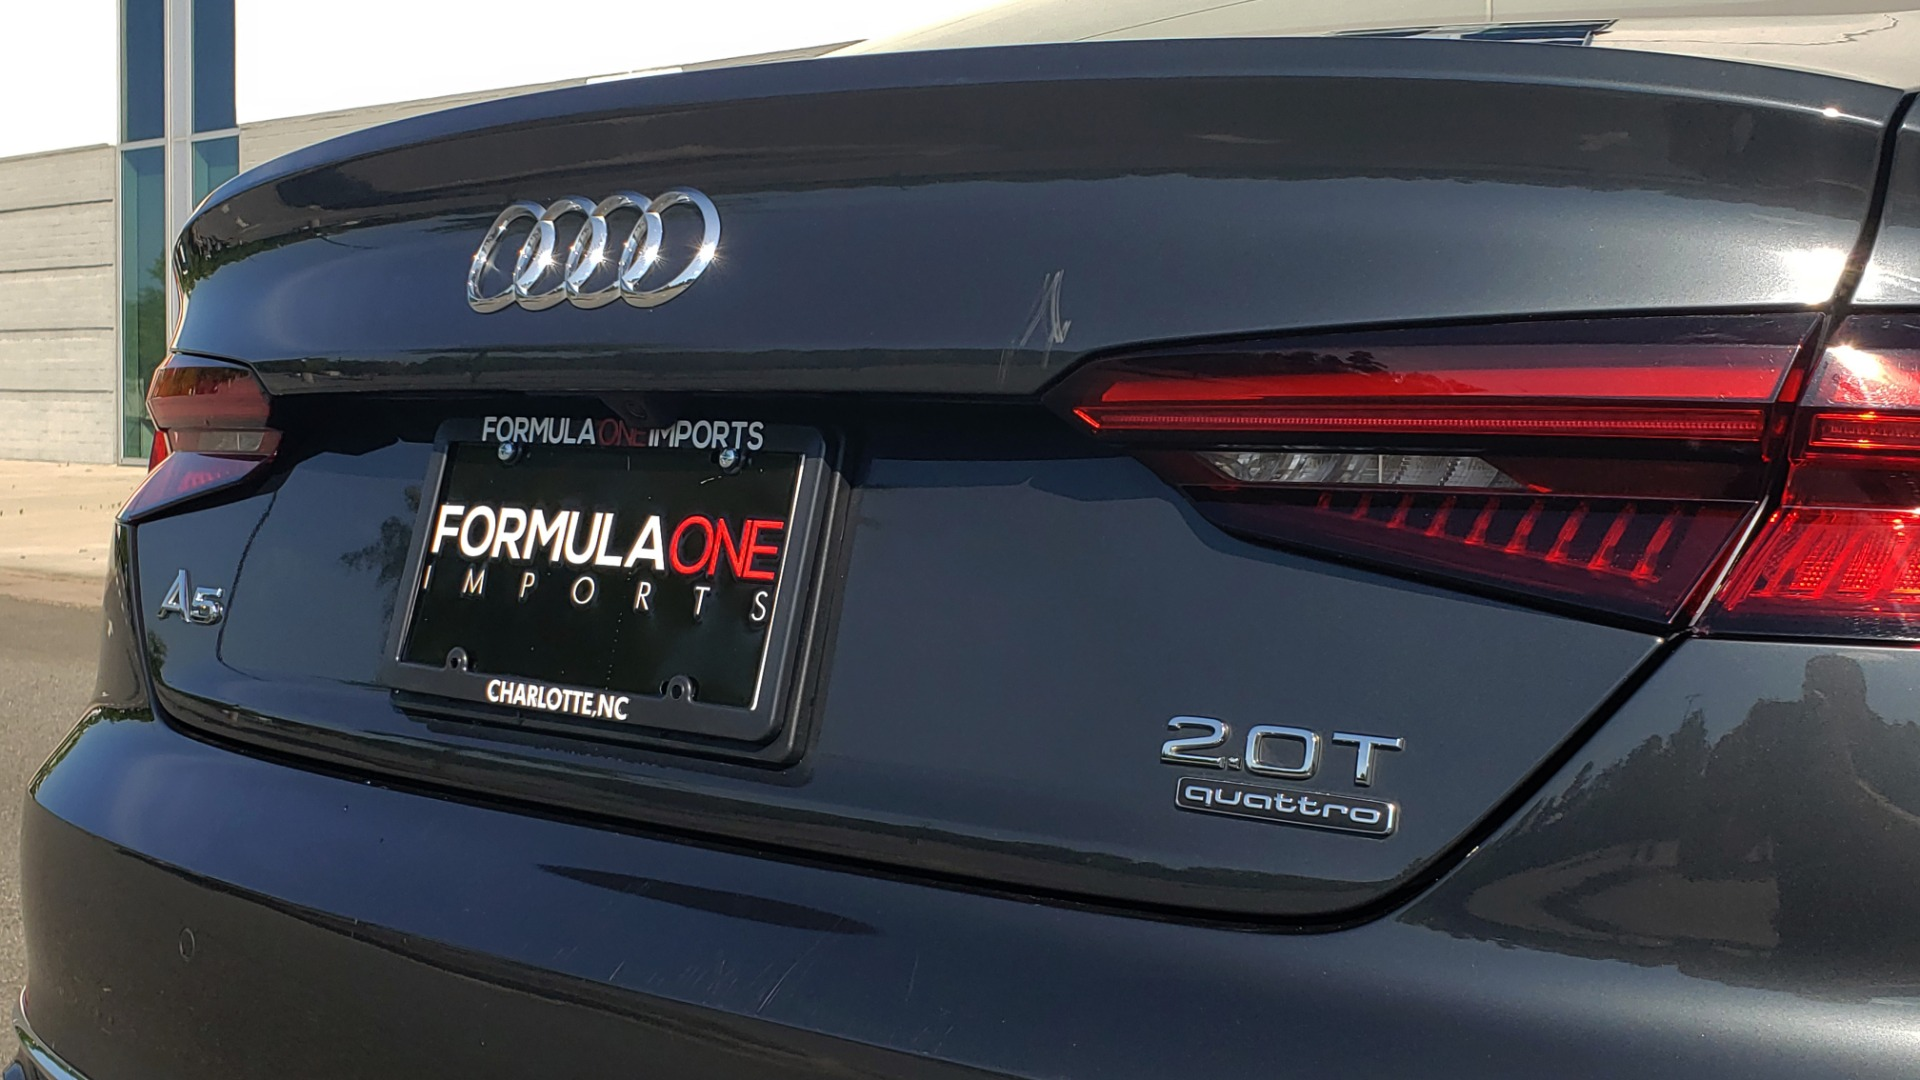 Used 2018 Audi A5 SPORTBACK PREMIUM PLUS 2.0T / AWD / NAV / B&O SND / SUNROOF / REARVIEW for sale Sold at Formula Imports in Charlotte NC 28227 36